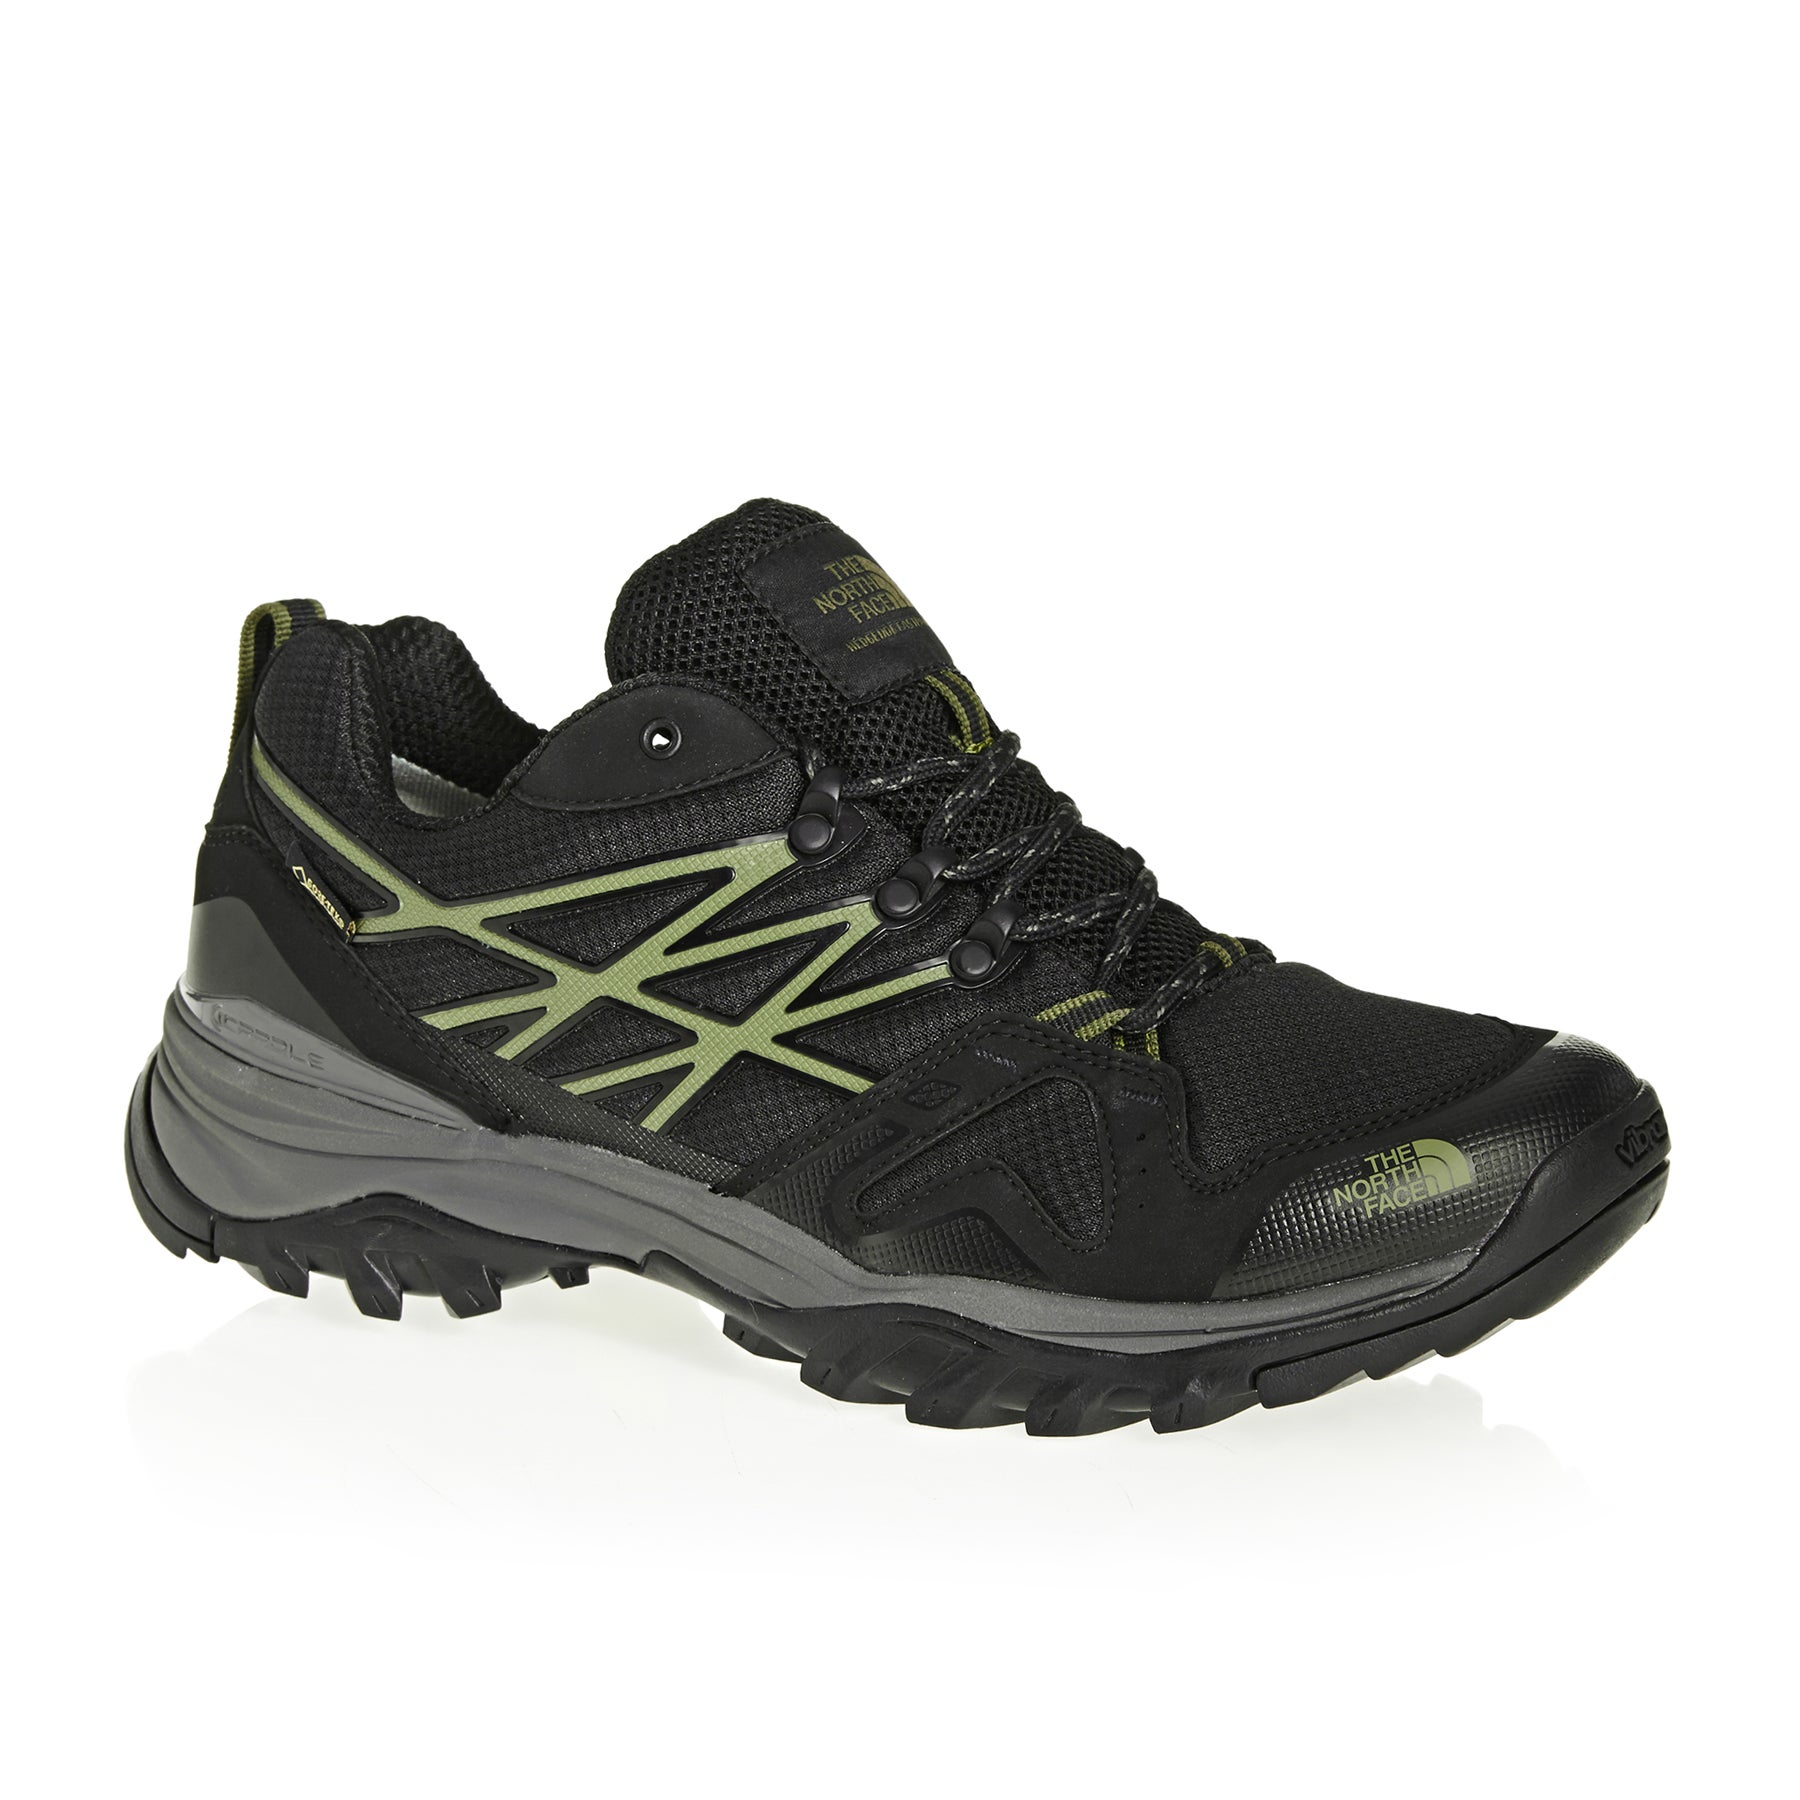 North Face Hedgehog Fastpack GTX Walking Shoes - Four Leaf Clover TNF Black